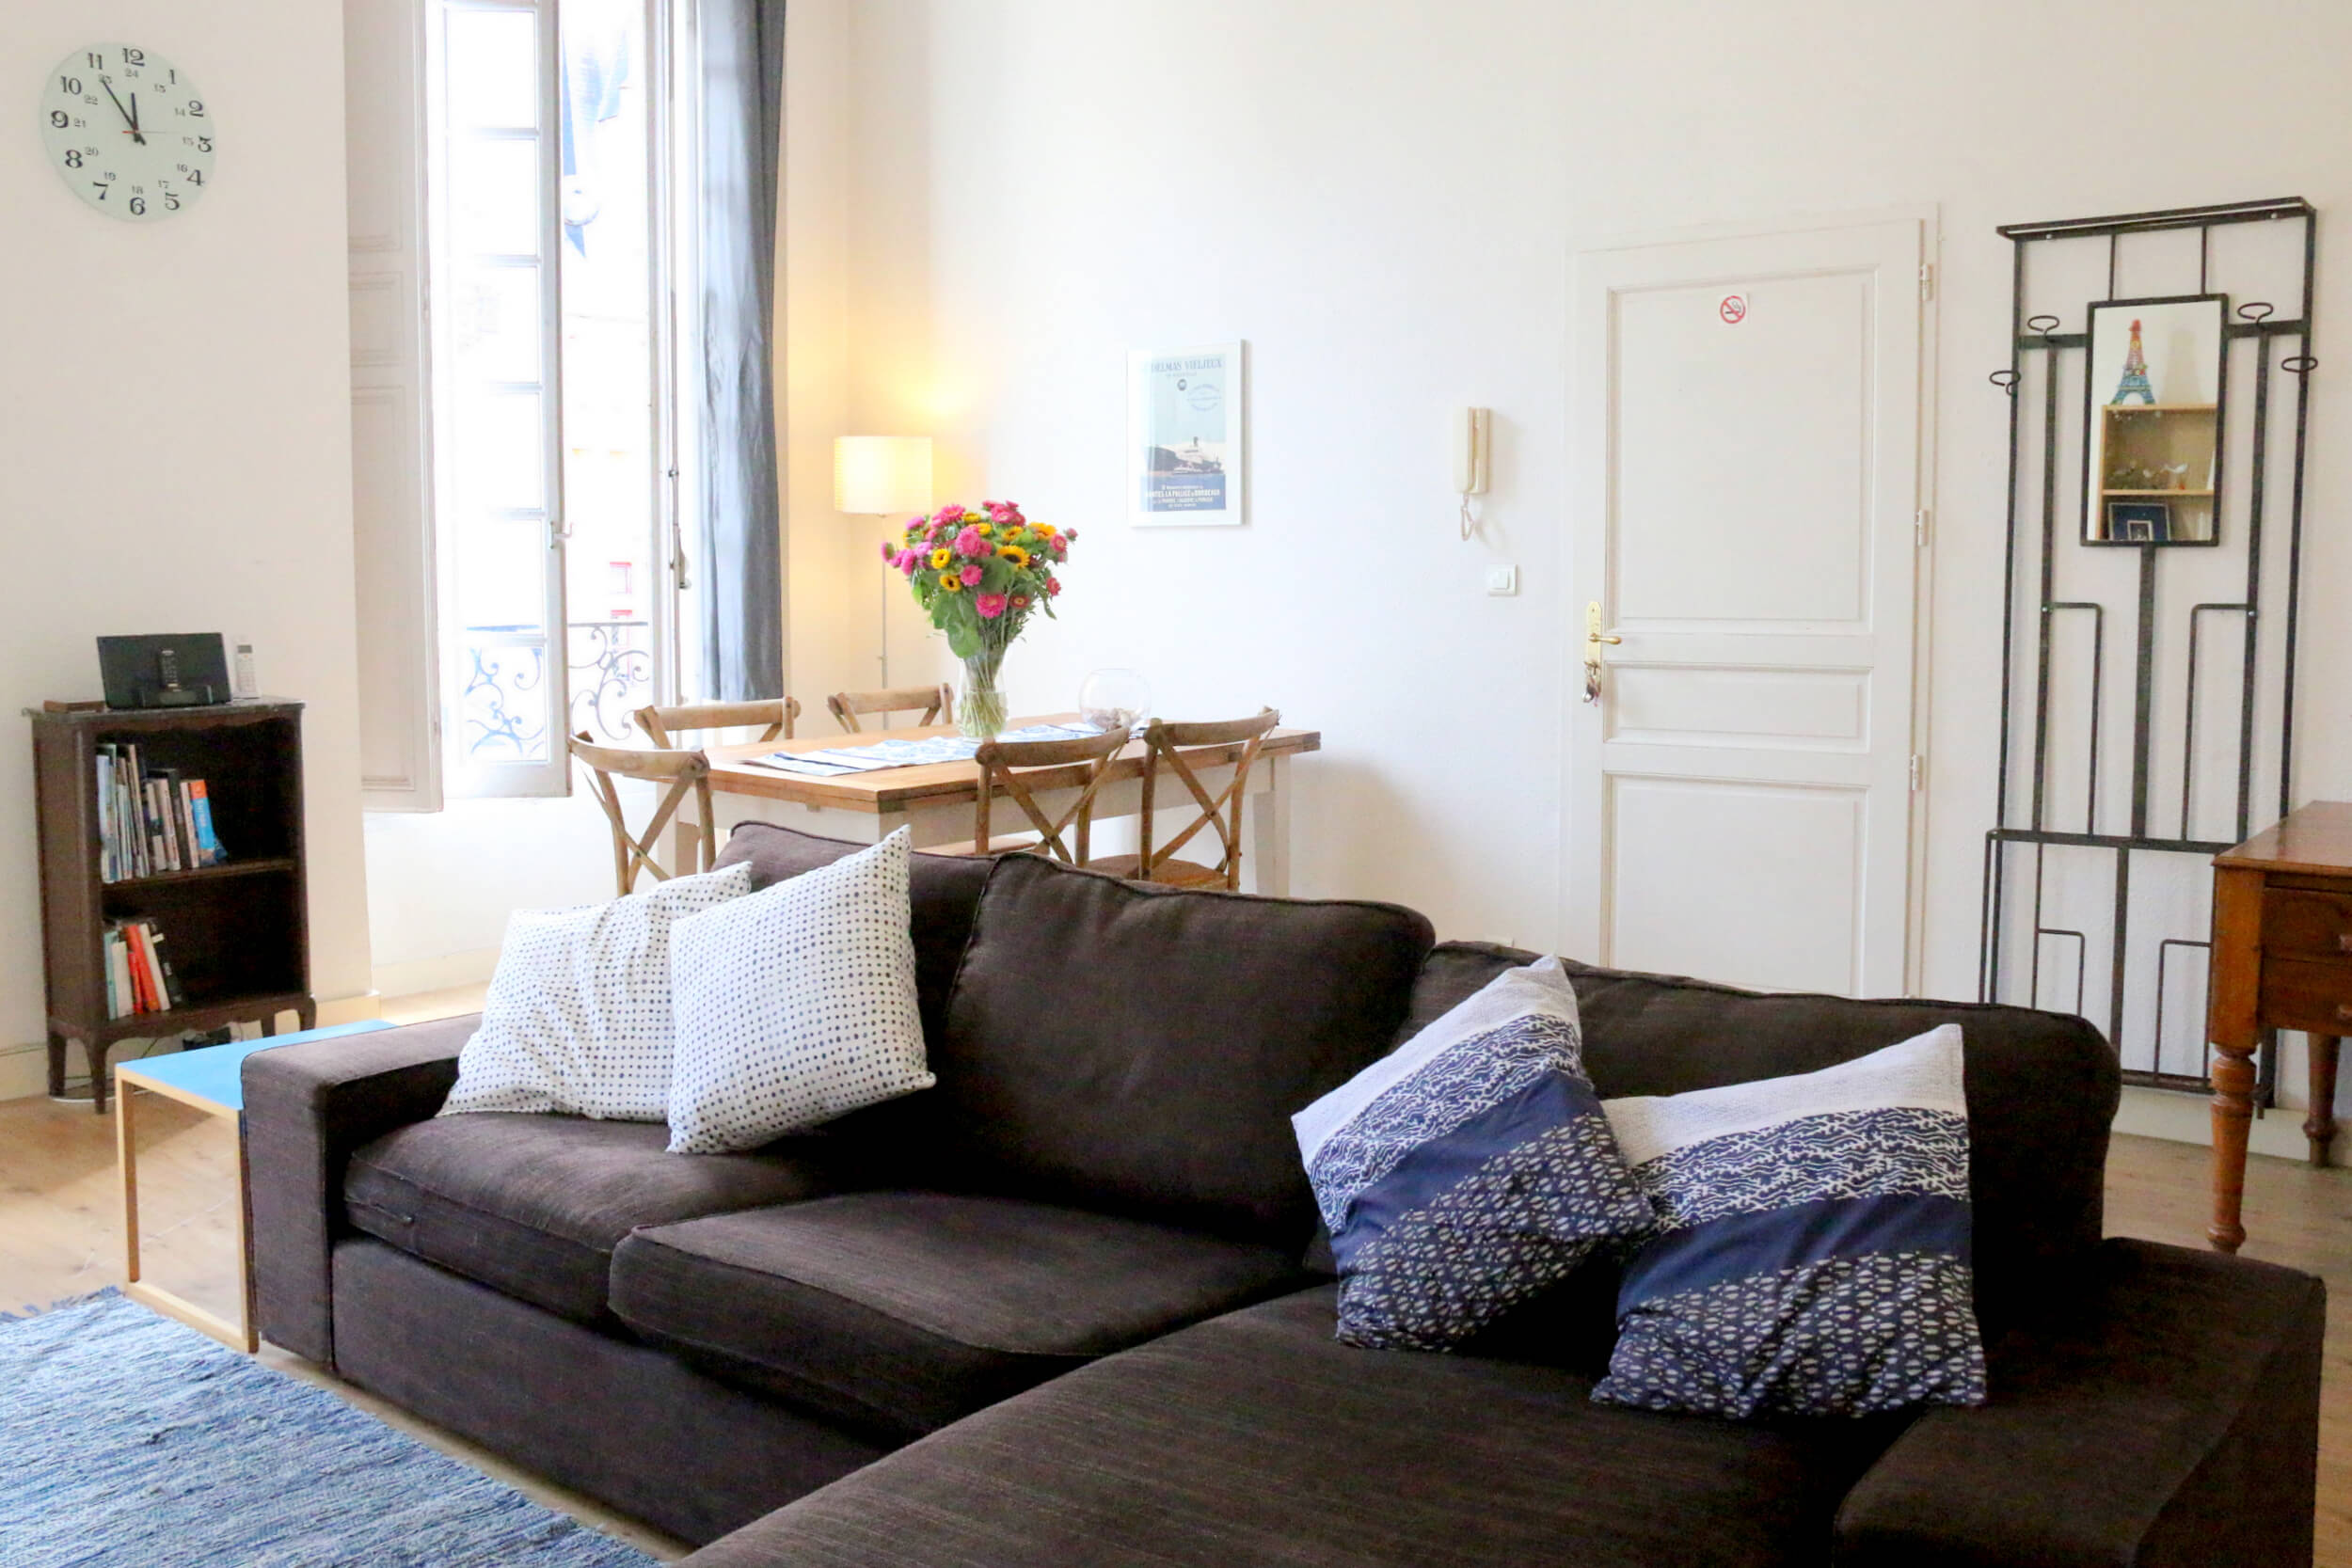 The key to bordeaux vacation rental apartments in Bordeaux apartments